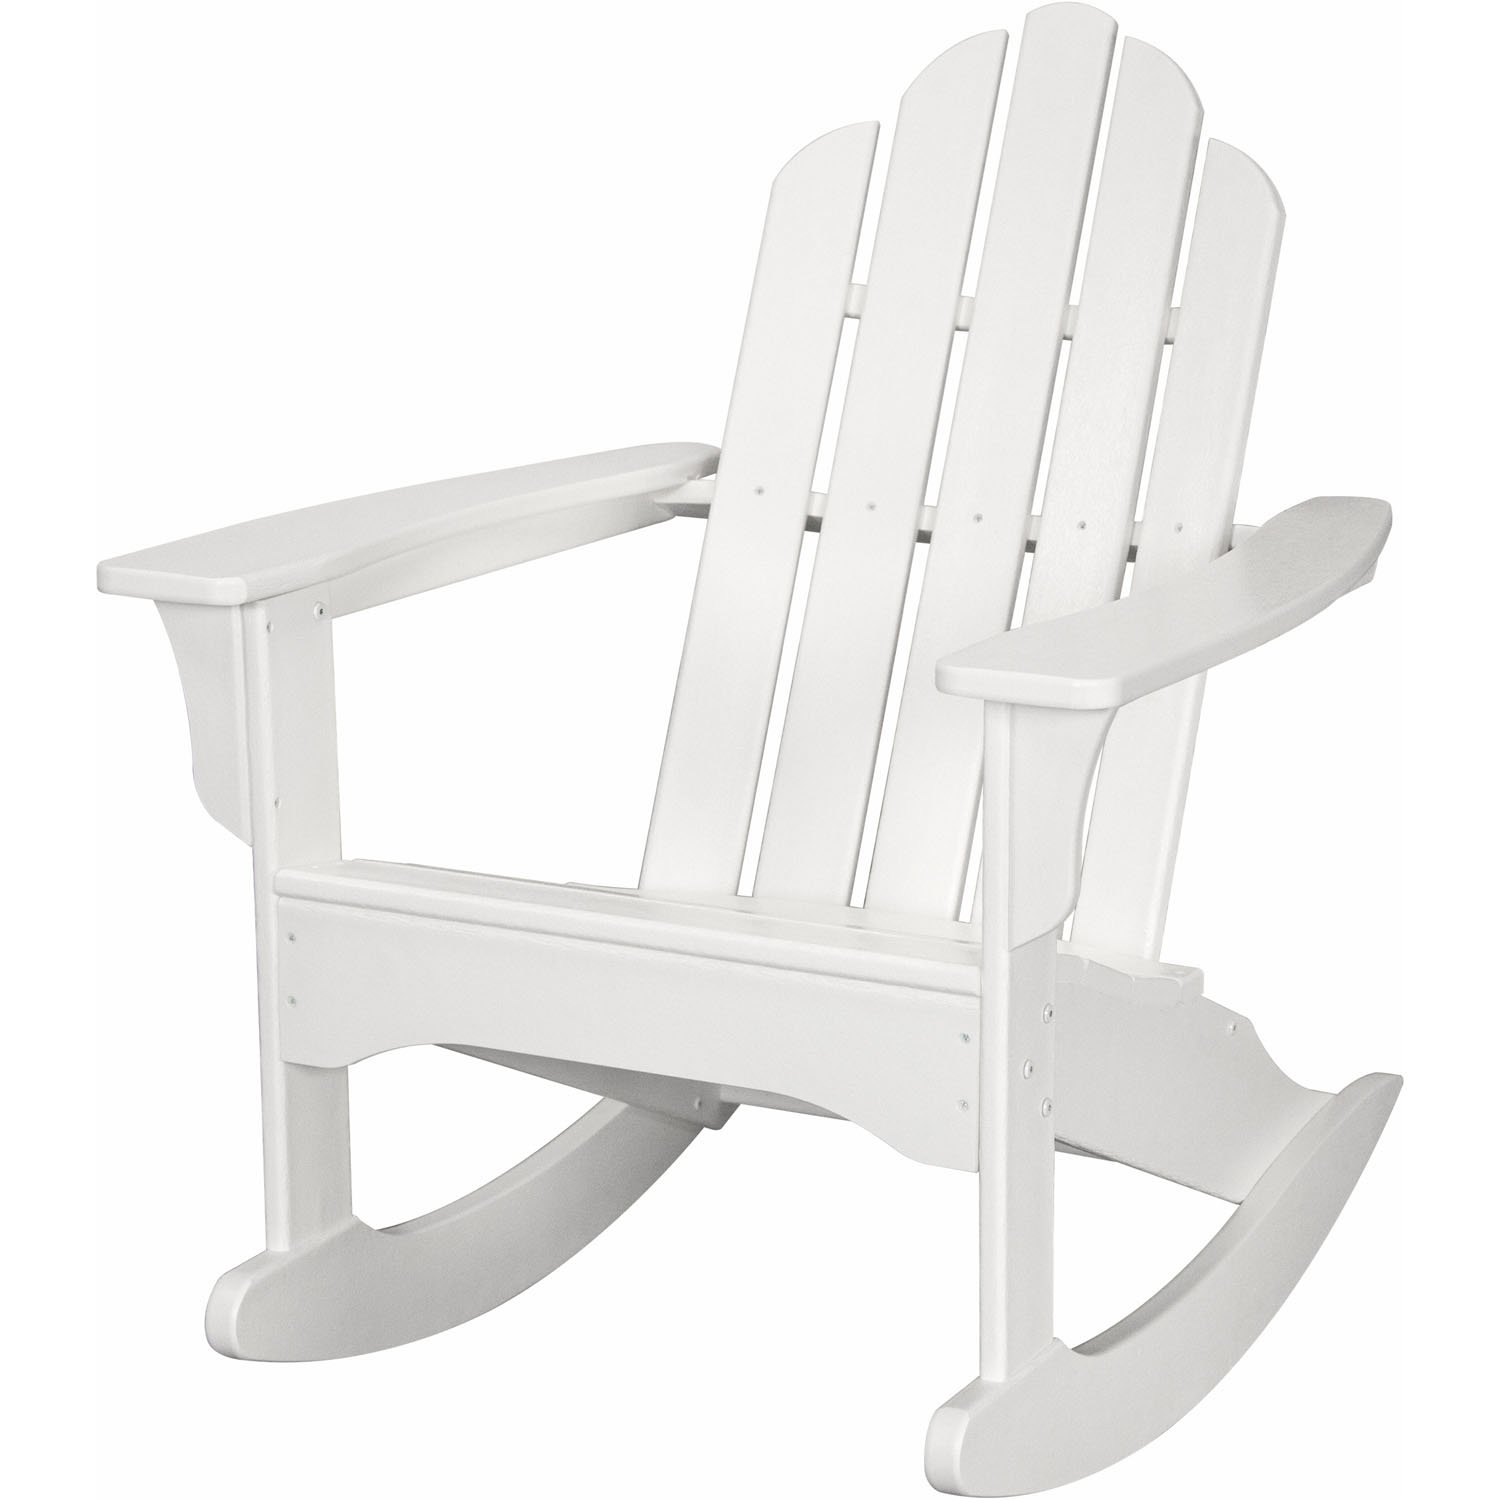 Hanover Outdoor Furniture HVLNR10WH All Weather Contoured Adirondack Rocking Chair, White